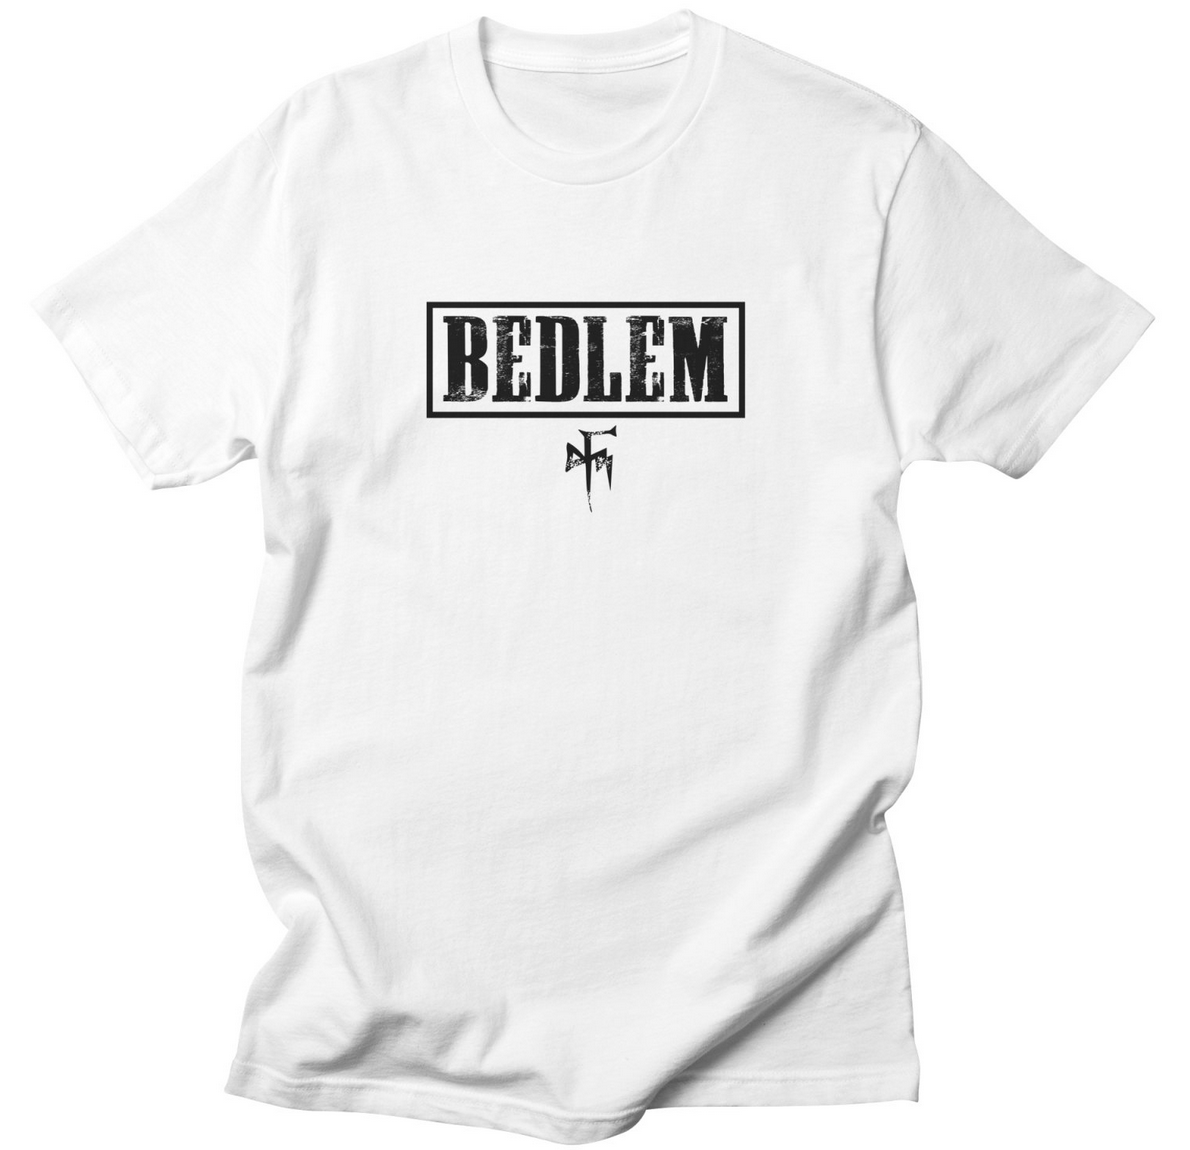 """Click here to order the """"BLACK BEDLEM LOGO"""" shirt and more"""